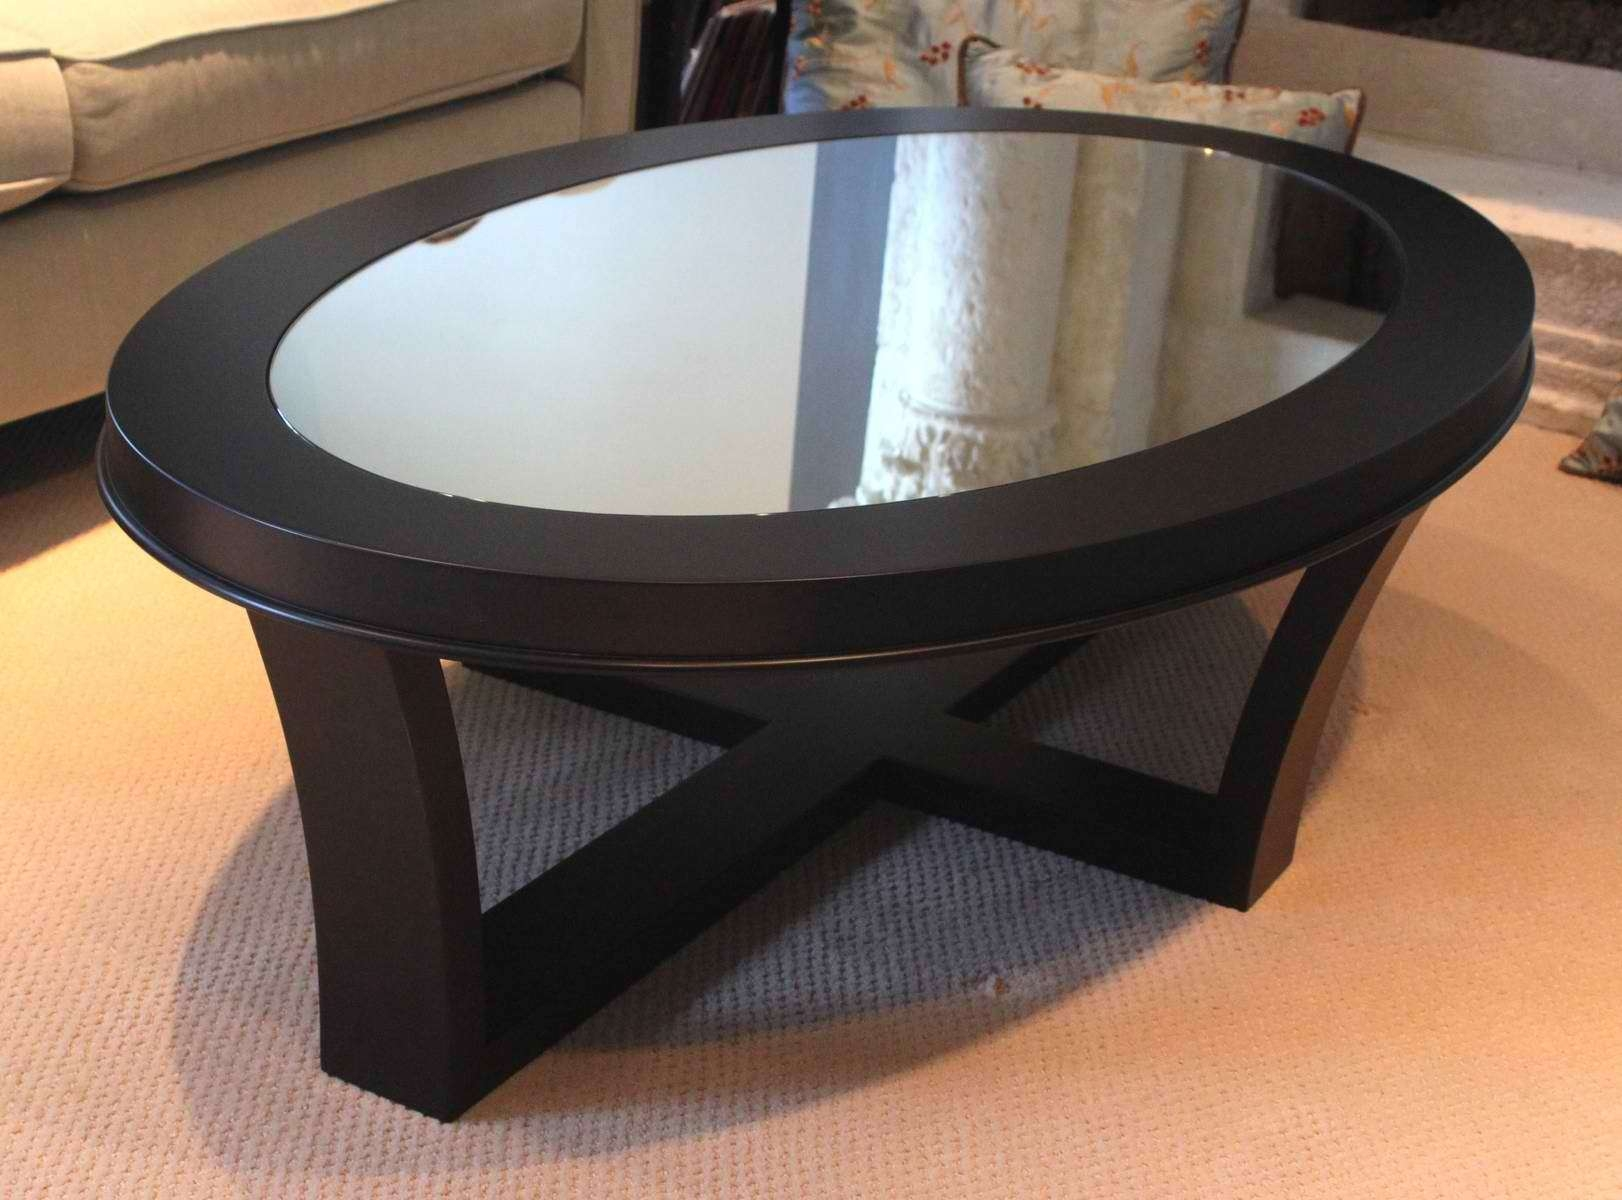 Most Recent Glass Top Storage Coffee Tables Within Coffee Tables : Mesmerizing Antique And Minimalist Oval Coffee (View 12 of 20)